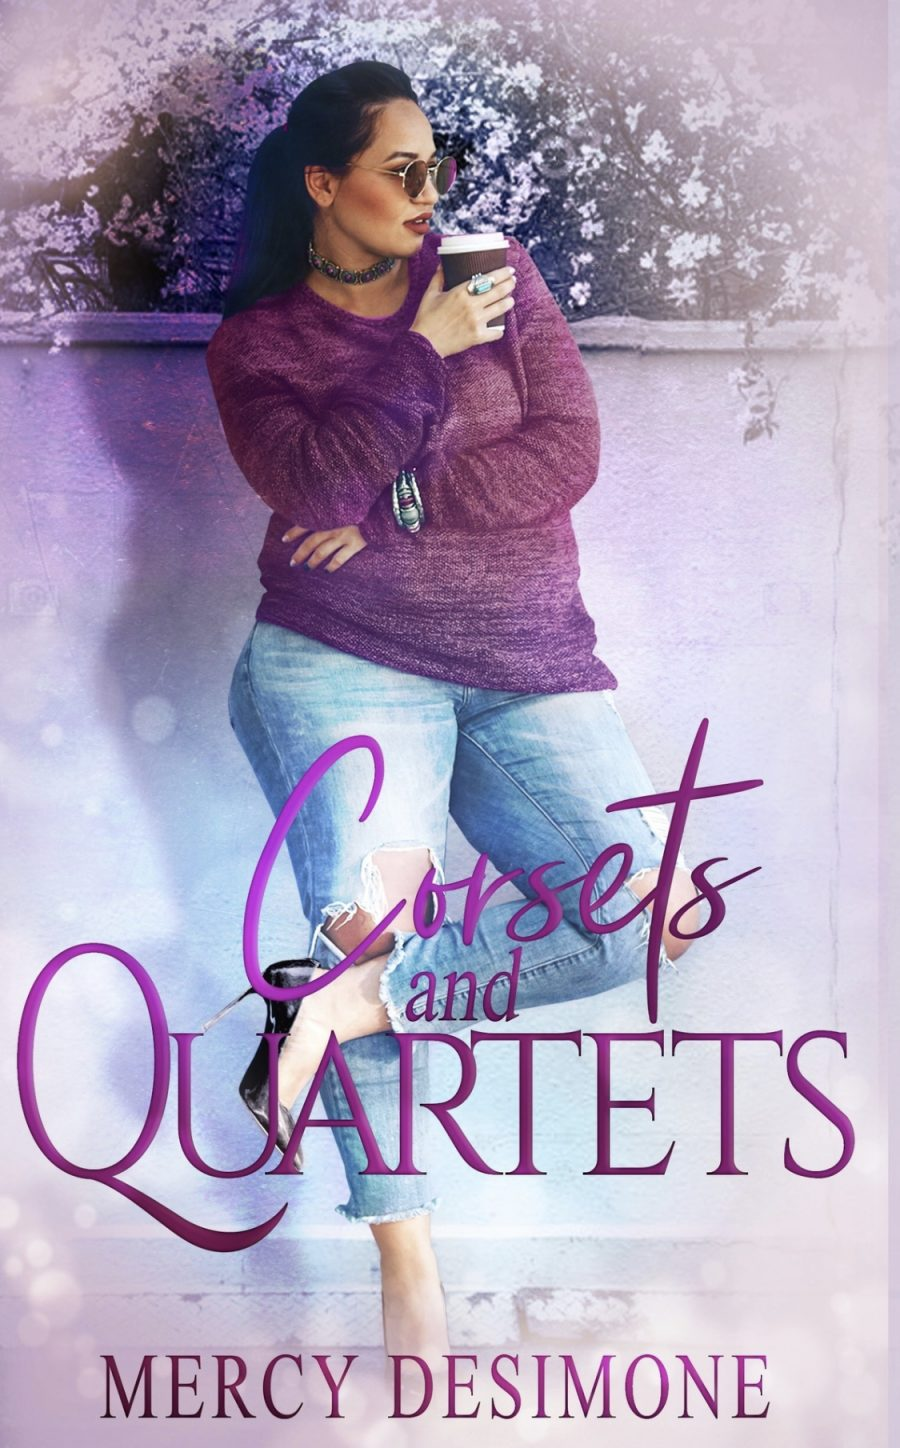 Corsets and Quartets by Mercy Desimone - A Book Review #BookReview #5Stars #Contemporary #RH #HEA #StandAlone #KindleUnlimited #KU